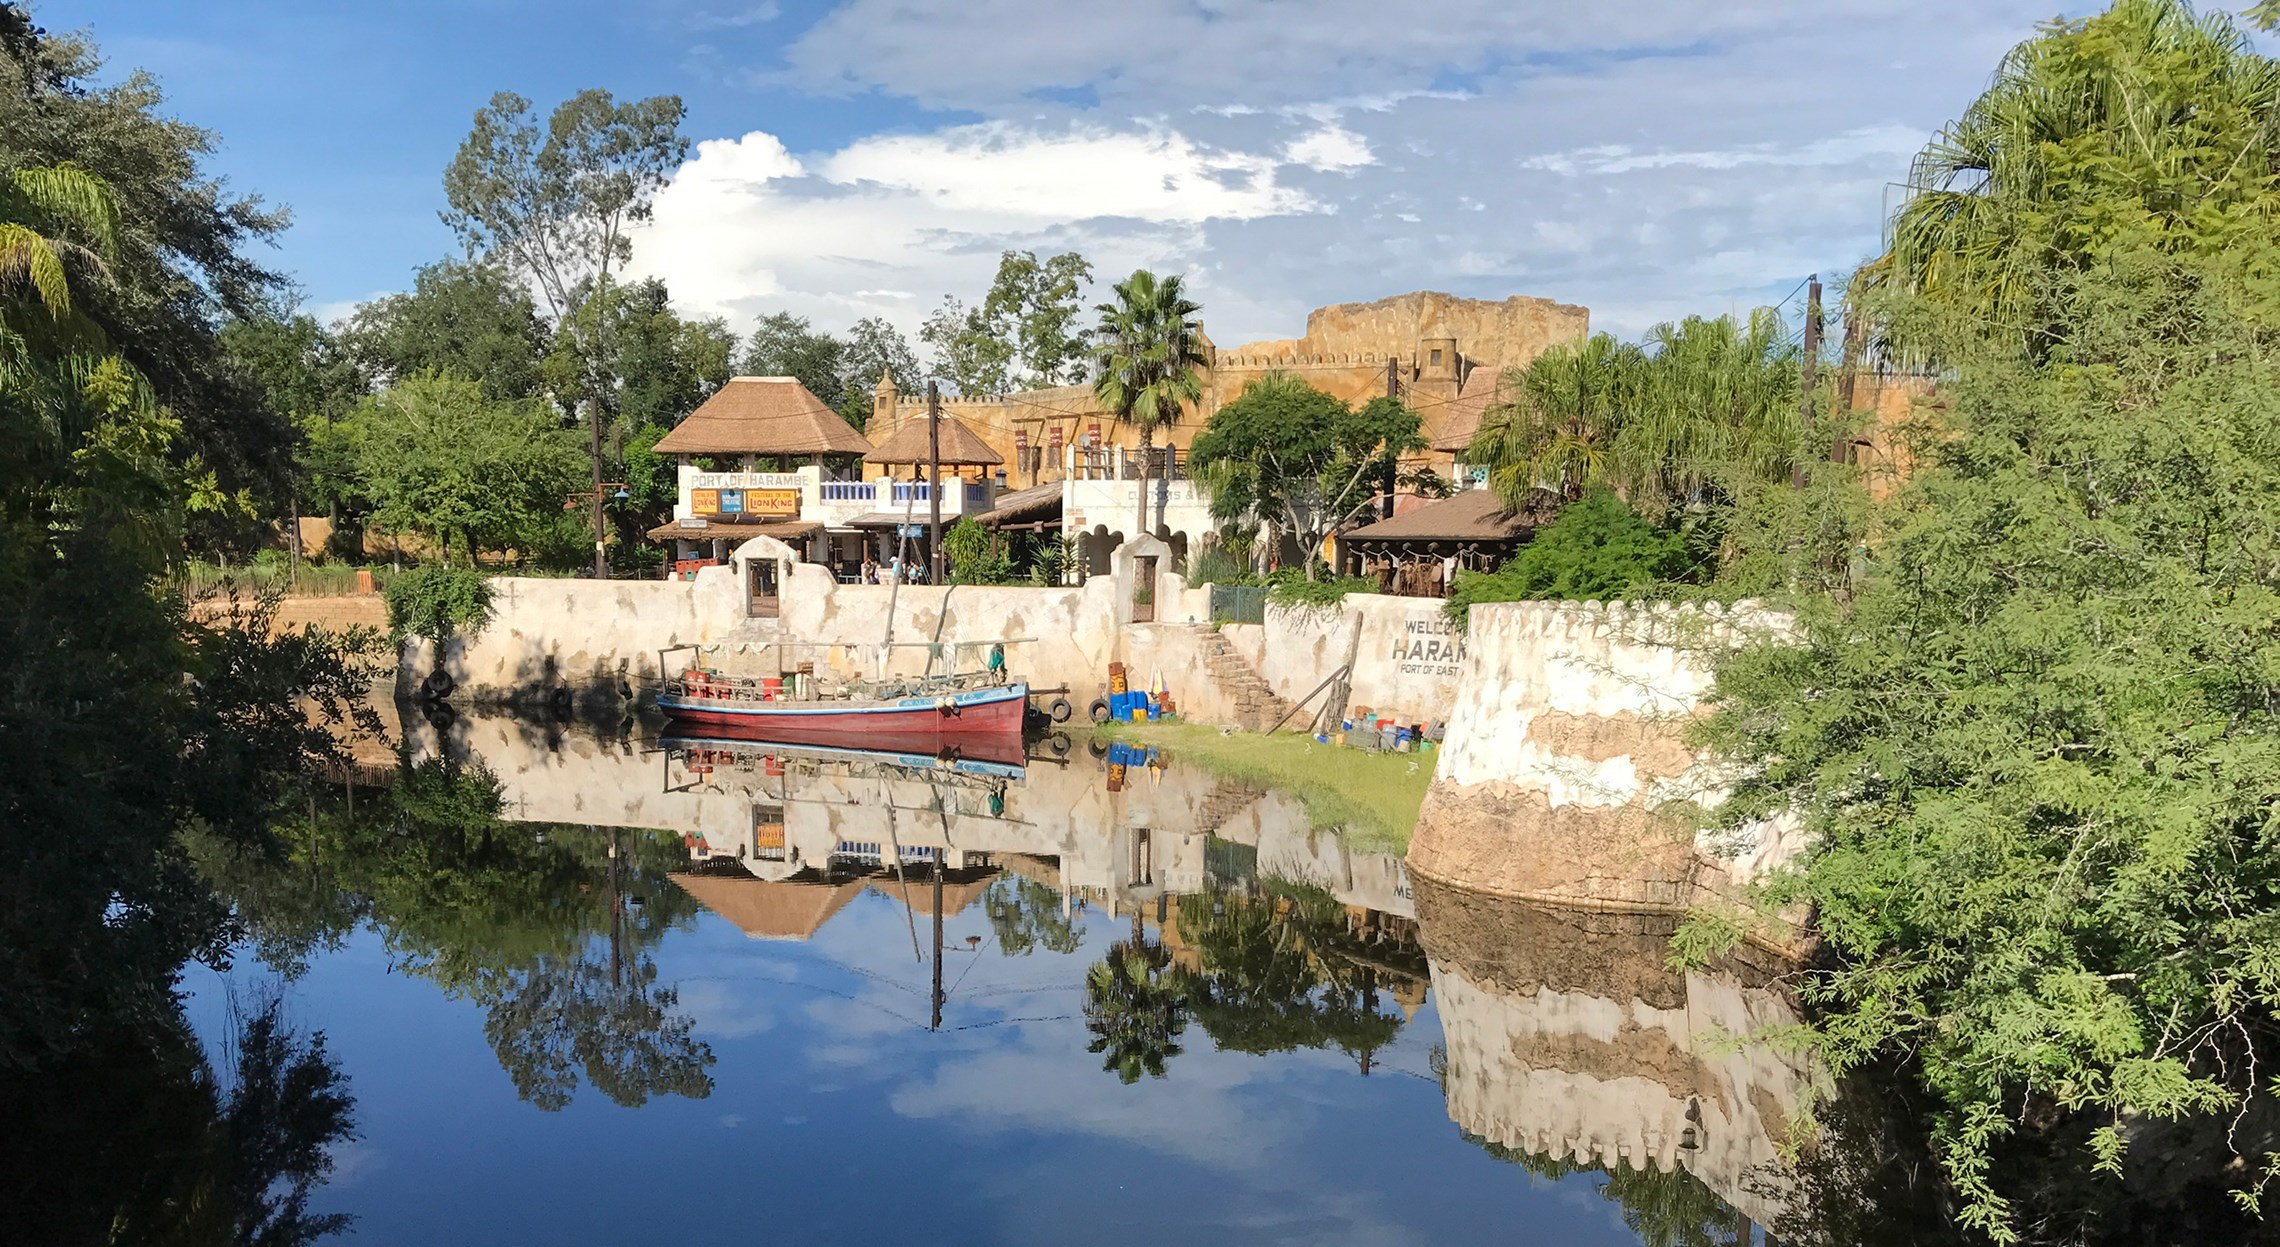 iPhone 7 Camera Put to the Test at Disney's Animal Kingdom